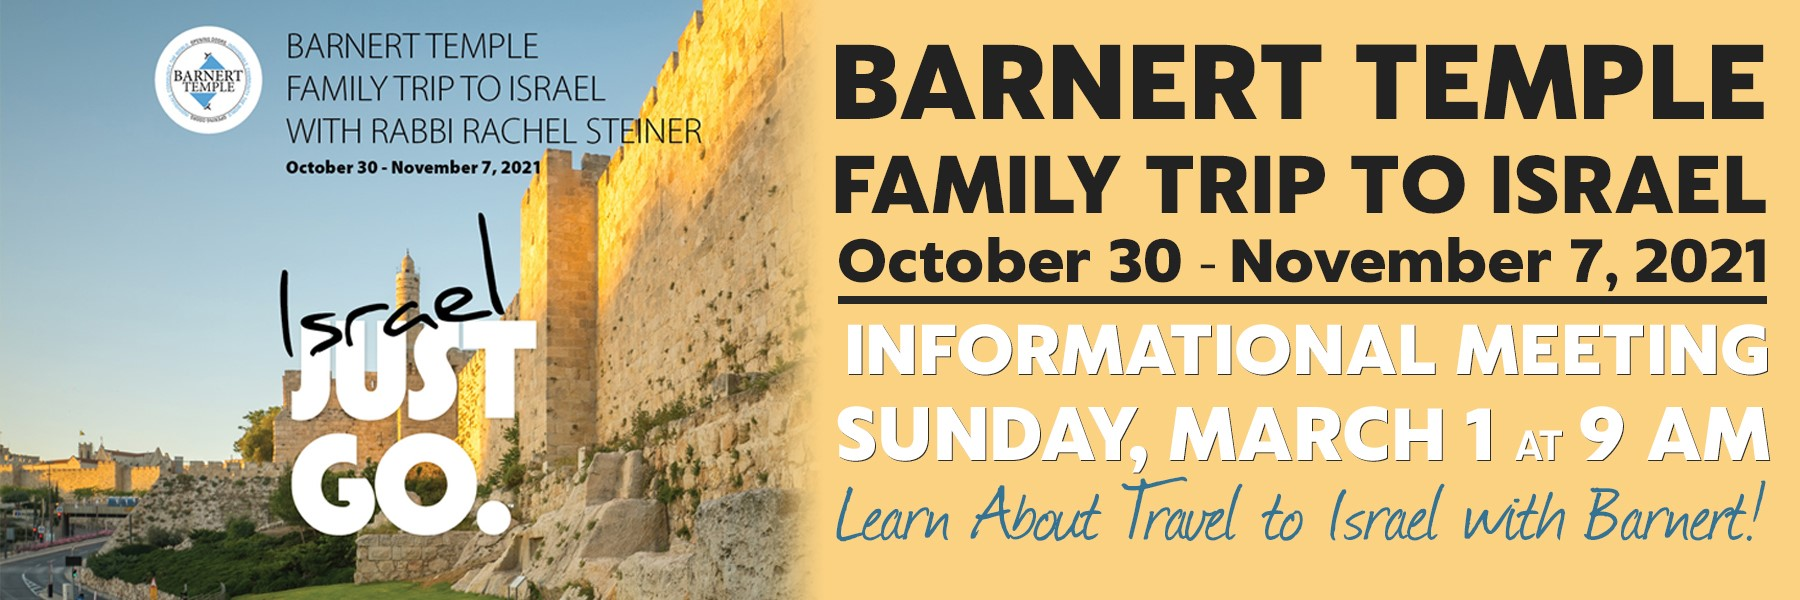 """<a href=""""https://www.barnerttemple.org/event/israel-trip-meeting.html""""                                     target="""""""">                                                                 <span class=""""slider_title"""">                                     Learn About the Barnert Trip to Israel in 2021!                                </span>                                                                 </a>                                                                                                                                                                                       <span class=""""slider_description"""">Rabbi Steiner is leading a trip to Israel in October 2021.  If you have never been or would like to return for an extra-special experience, come learn more about the Barnert trip.  A representative from ARZA Travel will share information with us.  Click above for details and to let us know if you are interested and/or coming.</span>"""